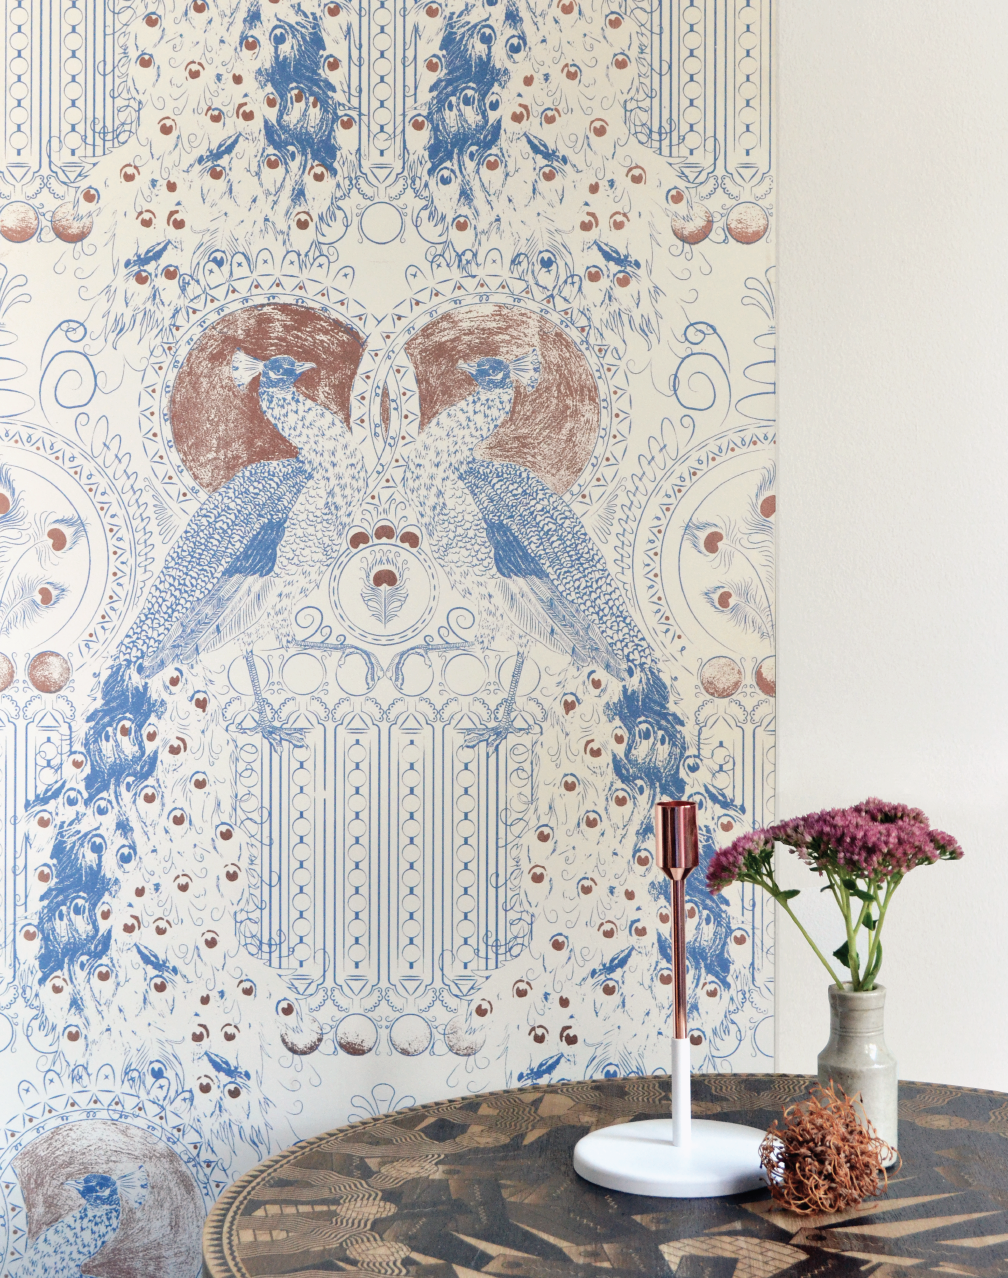 Eastern Peacock, Chalk Blue & Bronze for the walls